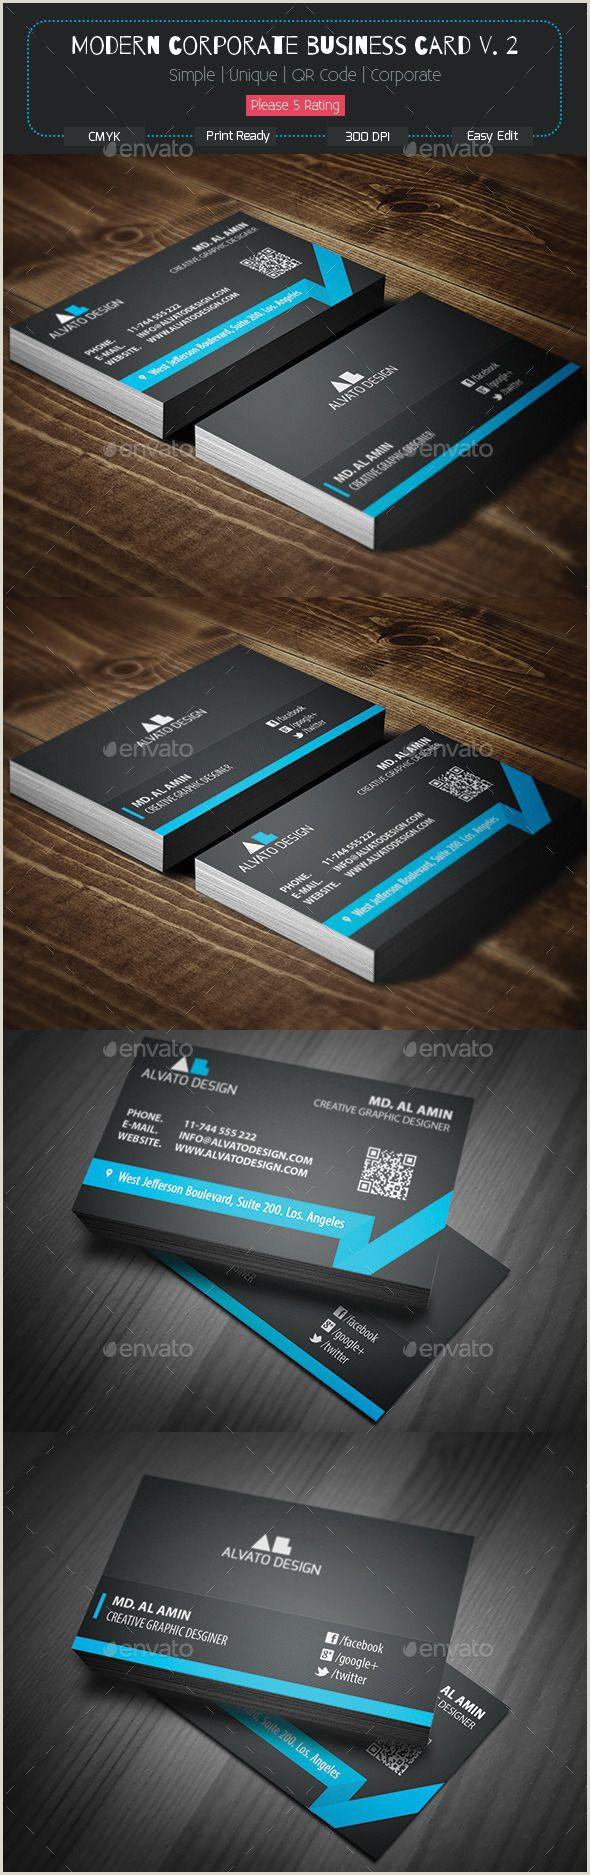 Design And Print Business Cards Modern Corporate Business Card V 2